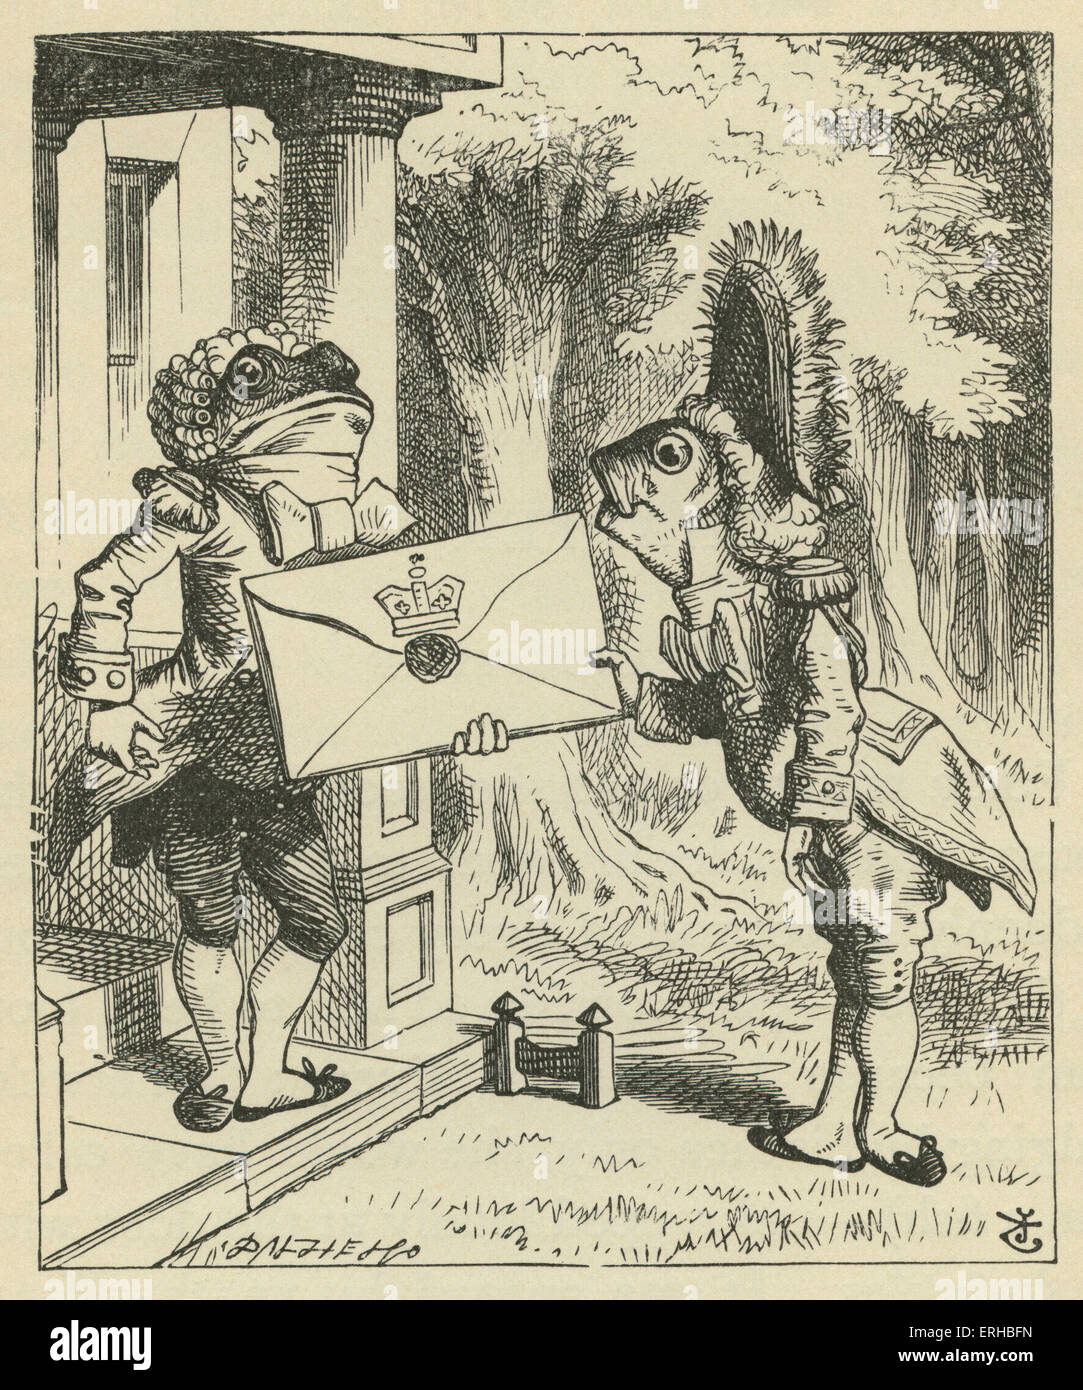 The Fish-Footman, Lewis Carroll's (1832-1898) book 'Alice's Adventures in Wonderland'. Illustrated by John Tenniel. Stock Photo